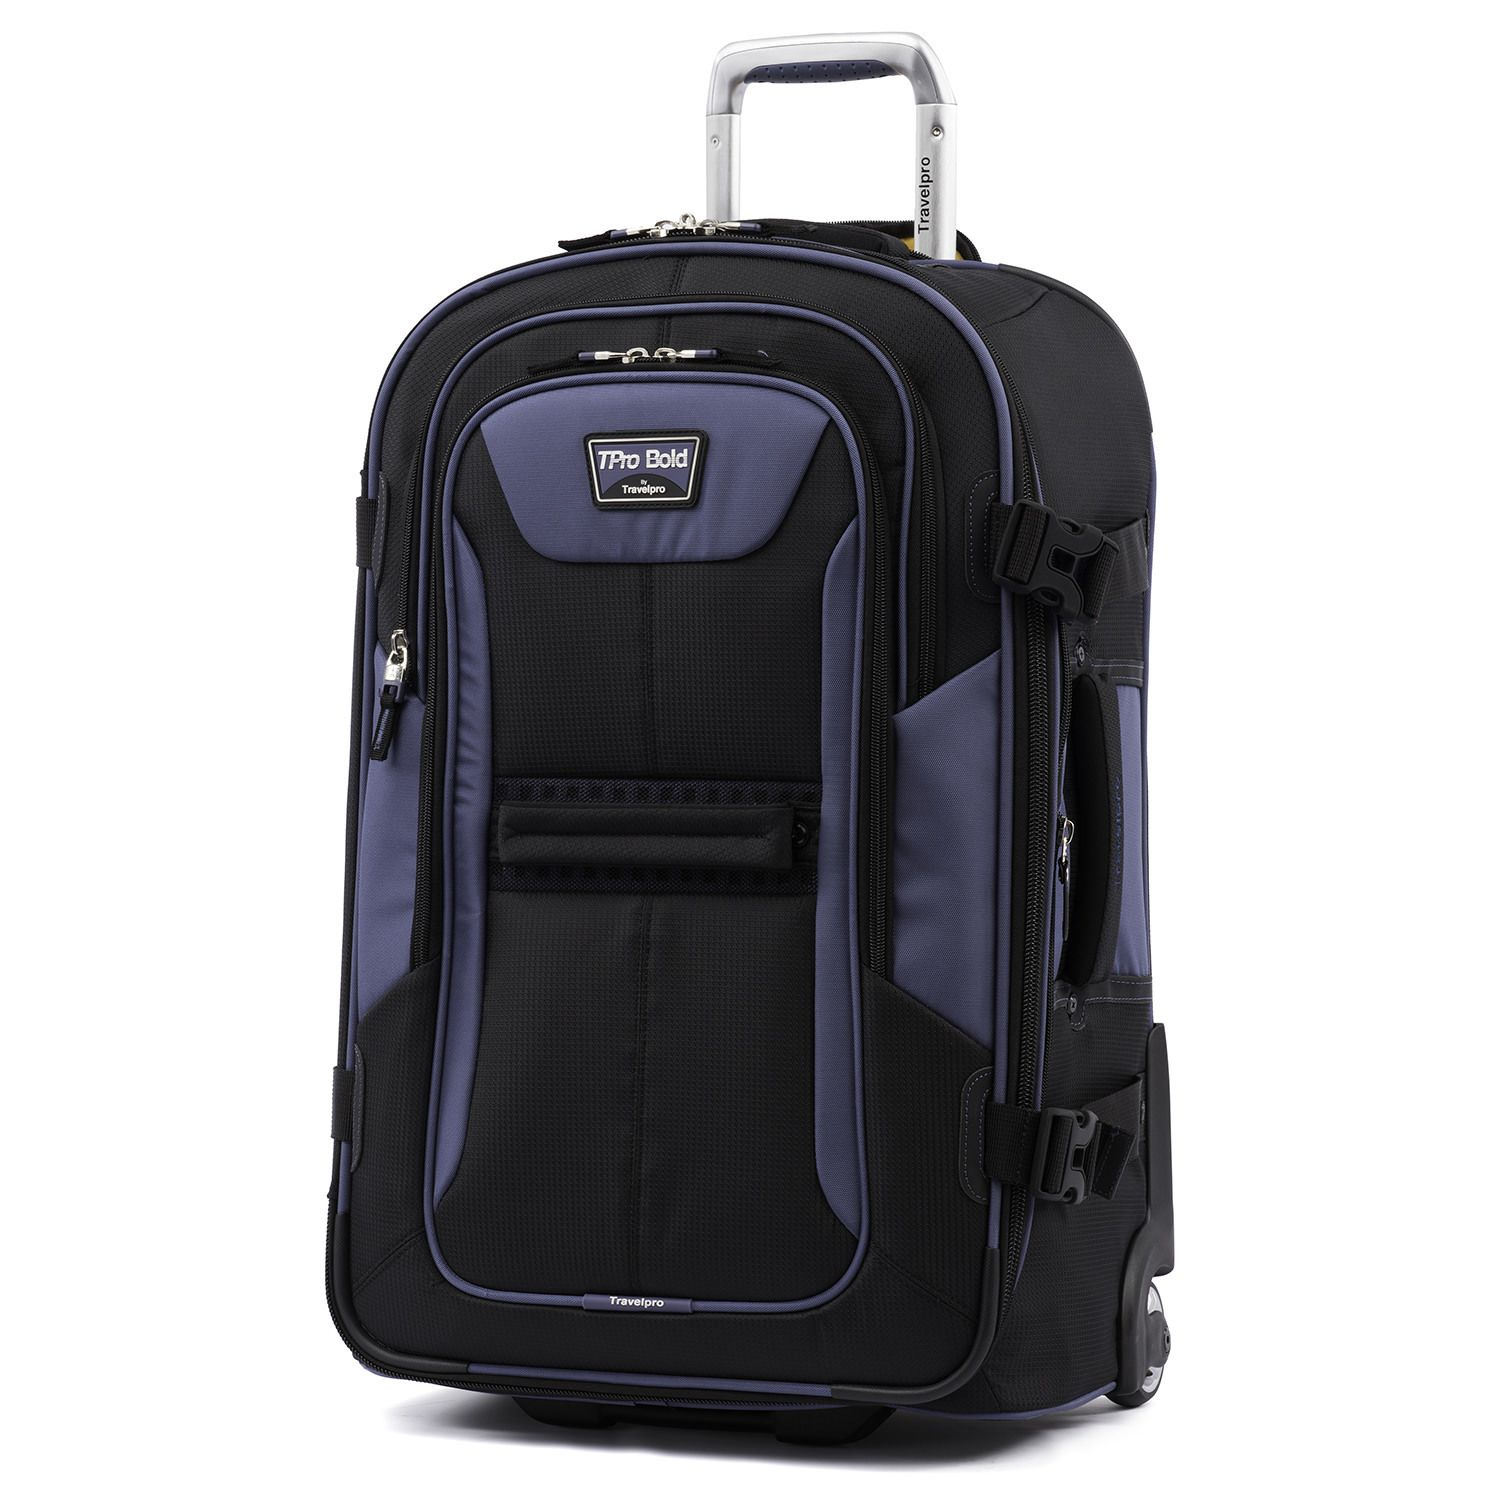 The 8 Best Travelpro Luggage Items of 2019 55bb57462fdb5